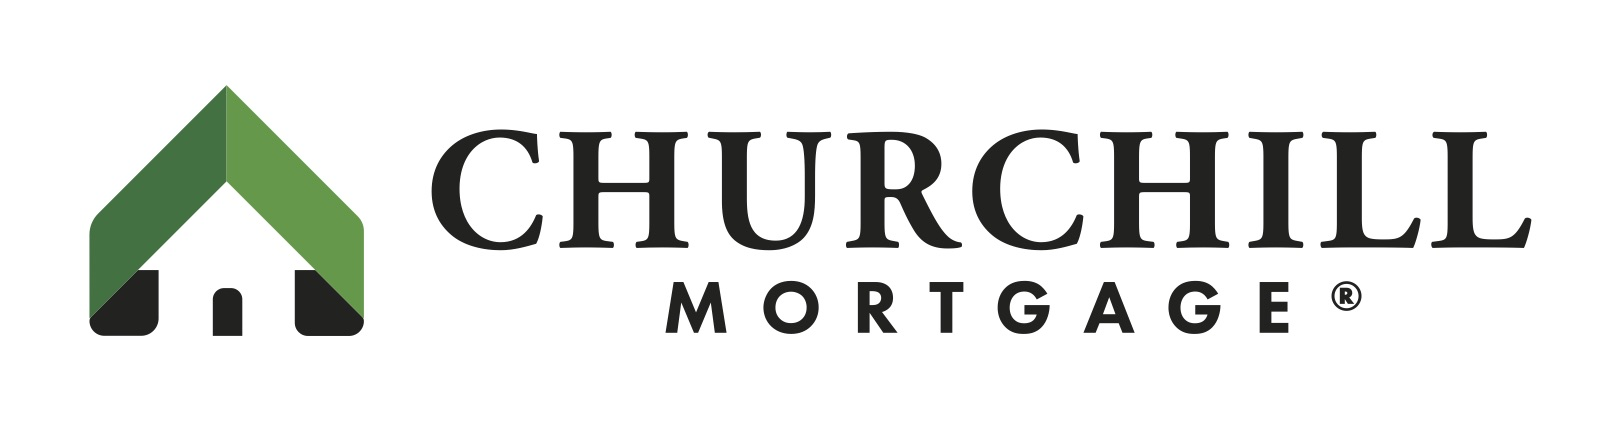 Churchill Mortgage Corporation Company Logo